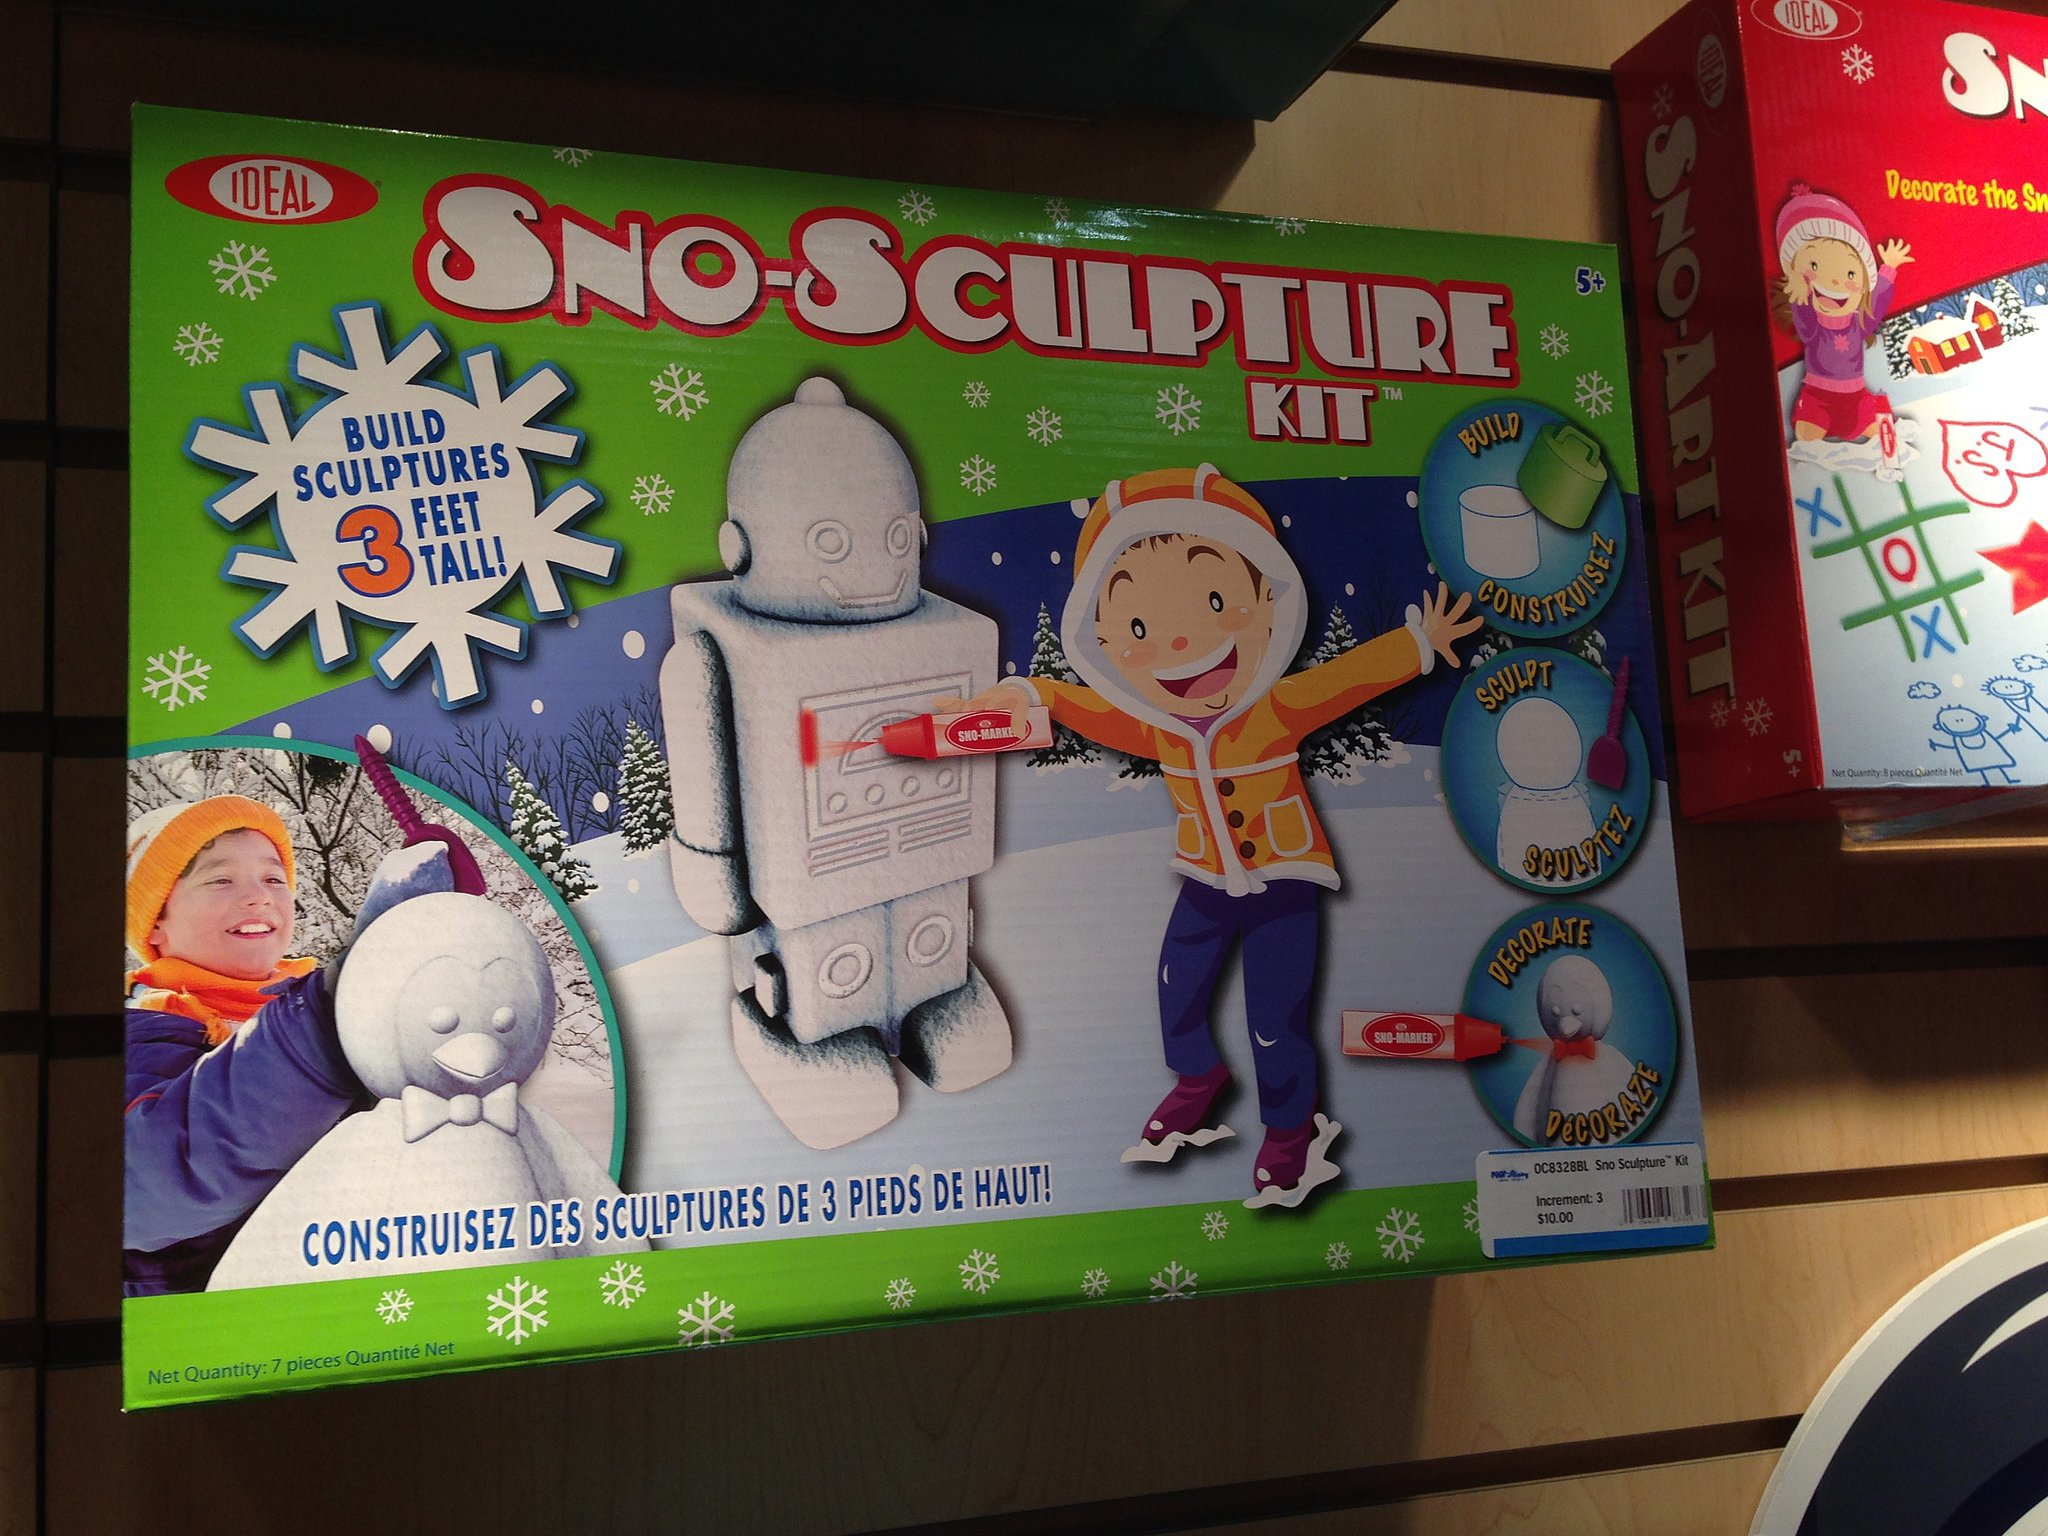 Sno-Sculpture Kit